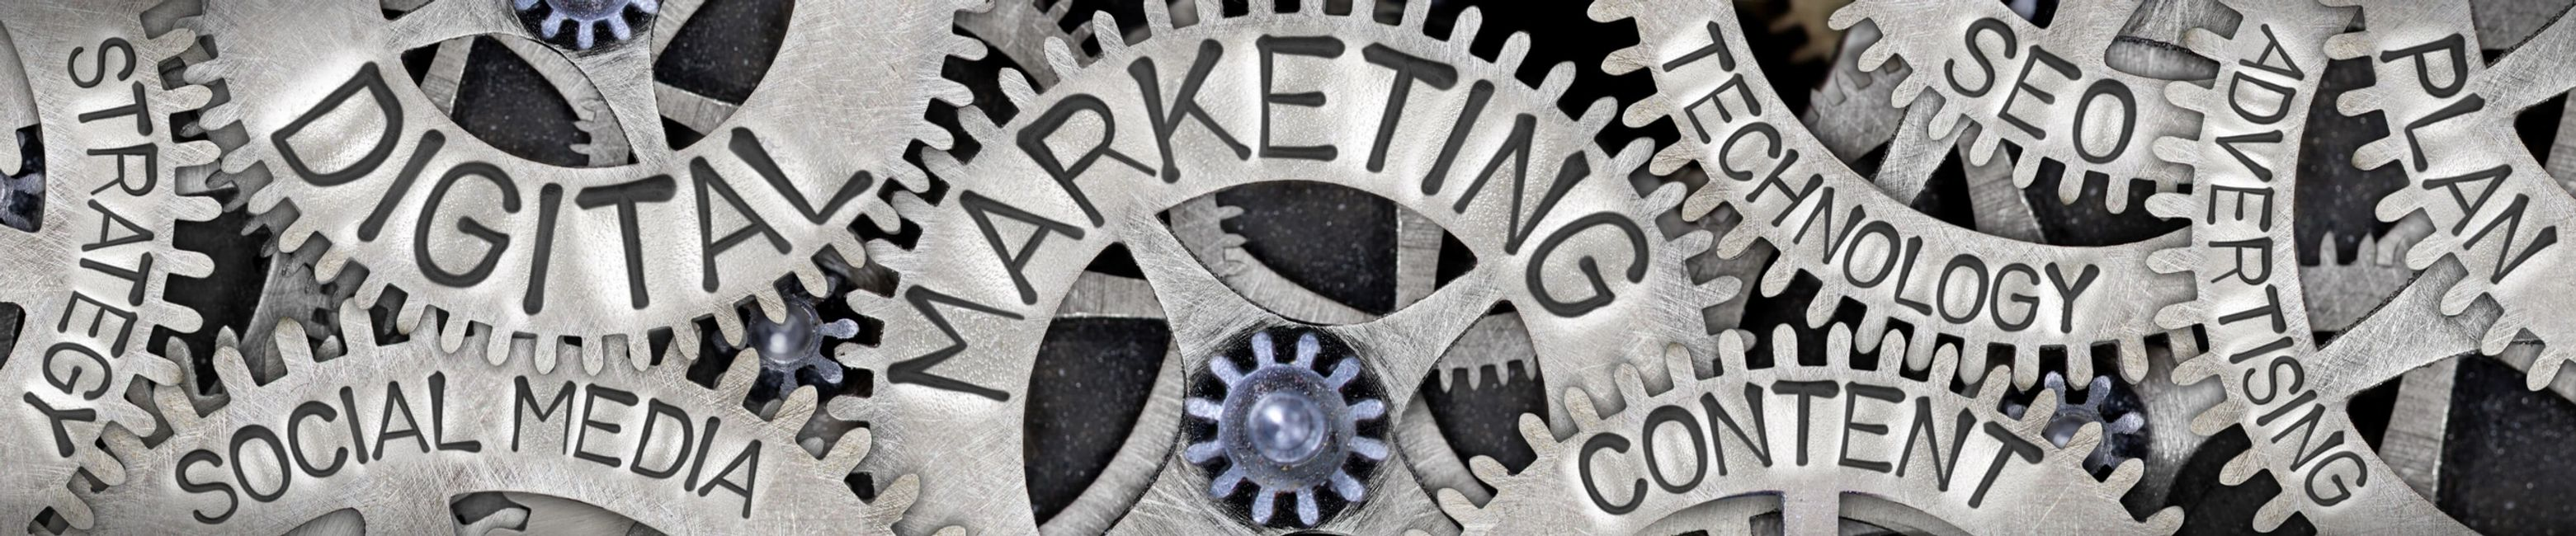 image of gears with digital marketing, content, seo, social media written on them.